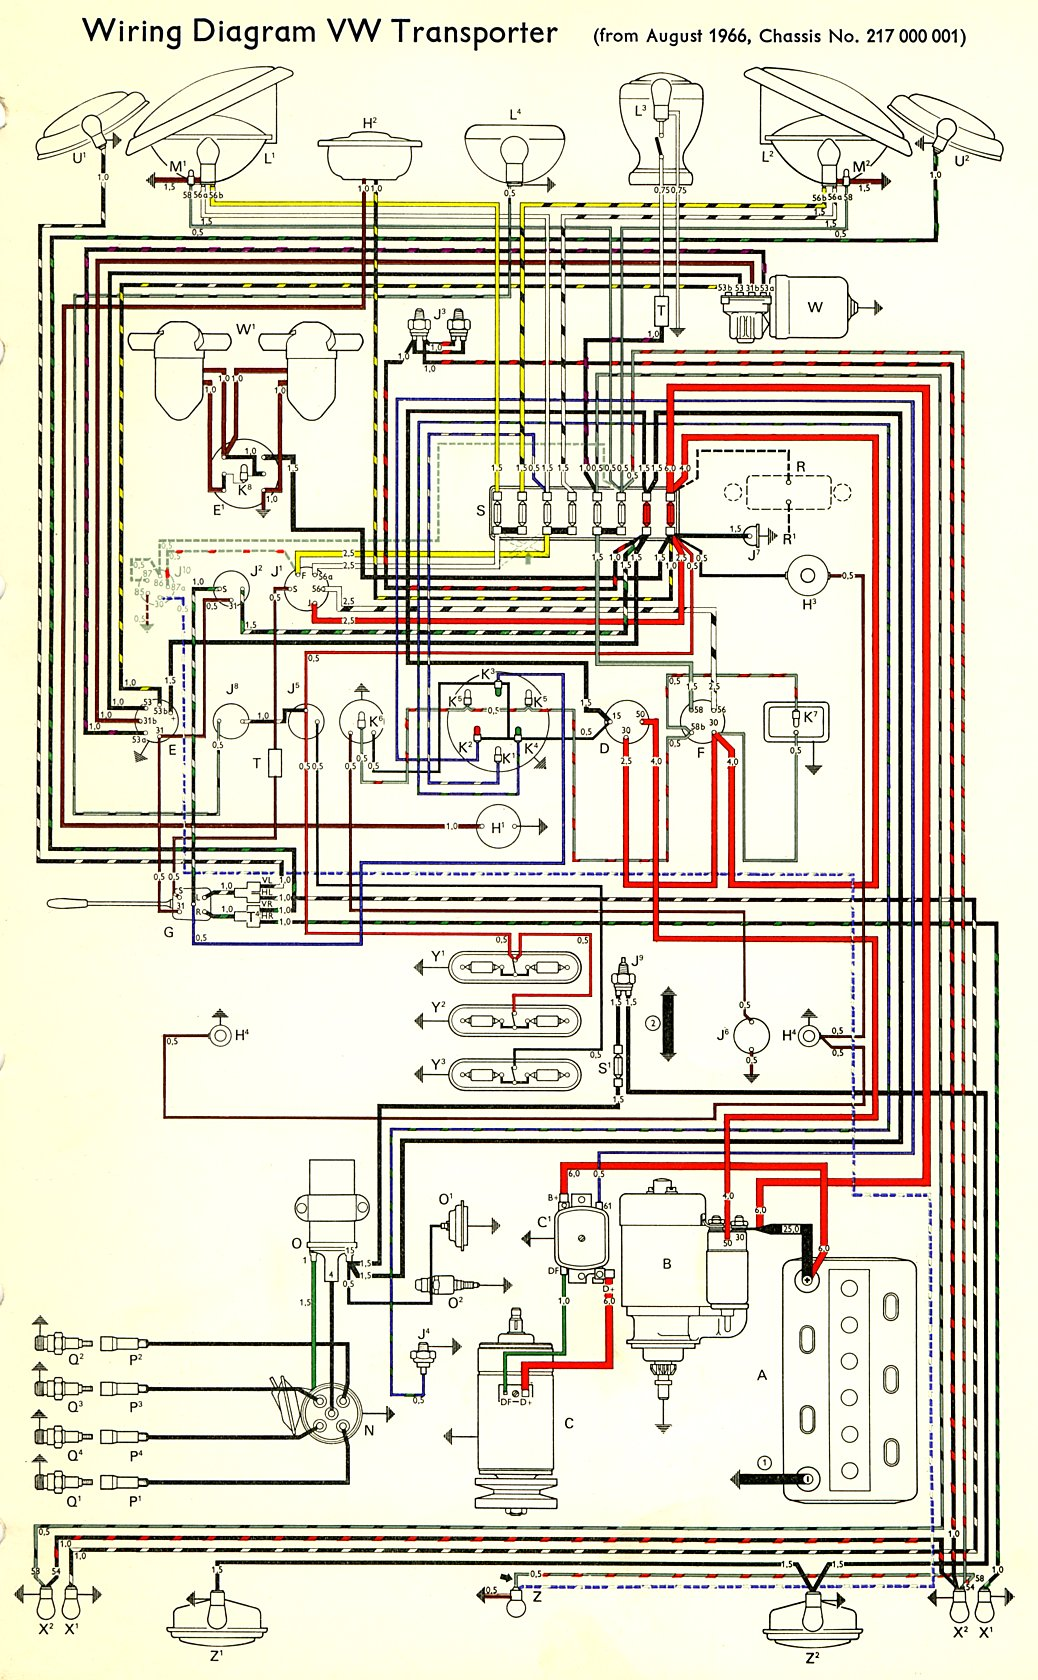 1973 Vw Transporter Bus Wiring Diagram Not Lossing 69 Volkswagen Bug Voltage Regulator 1967 Thegoldenbug Com Engine